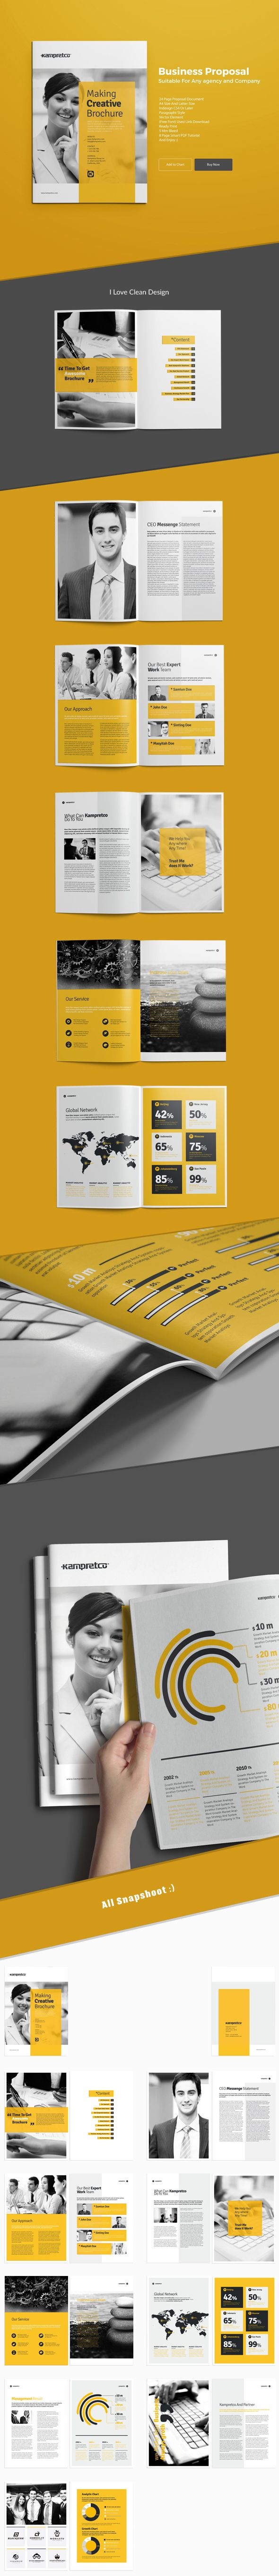 Business Brochure Tempalte suitable for any company22 pages, a4, brochure, business, clean, corporate, corporate brochure, customisable, customize, design, format, free fonts, gray, green, indesign, letter, logo, modern, PDF file, porftolio, print, pr…